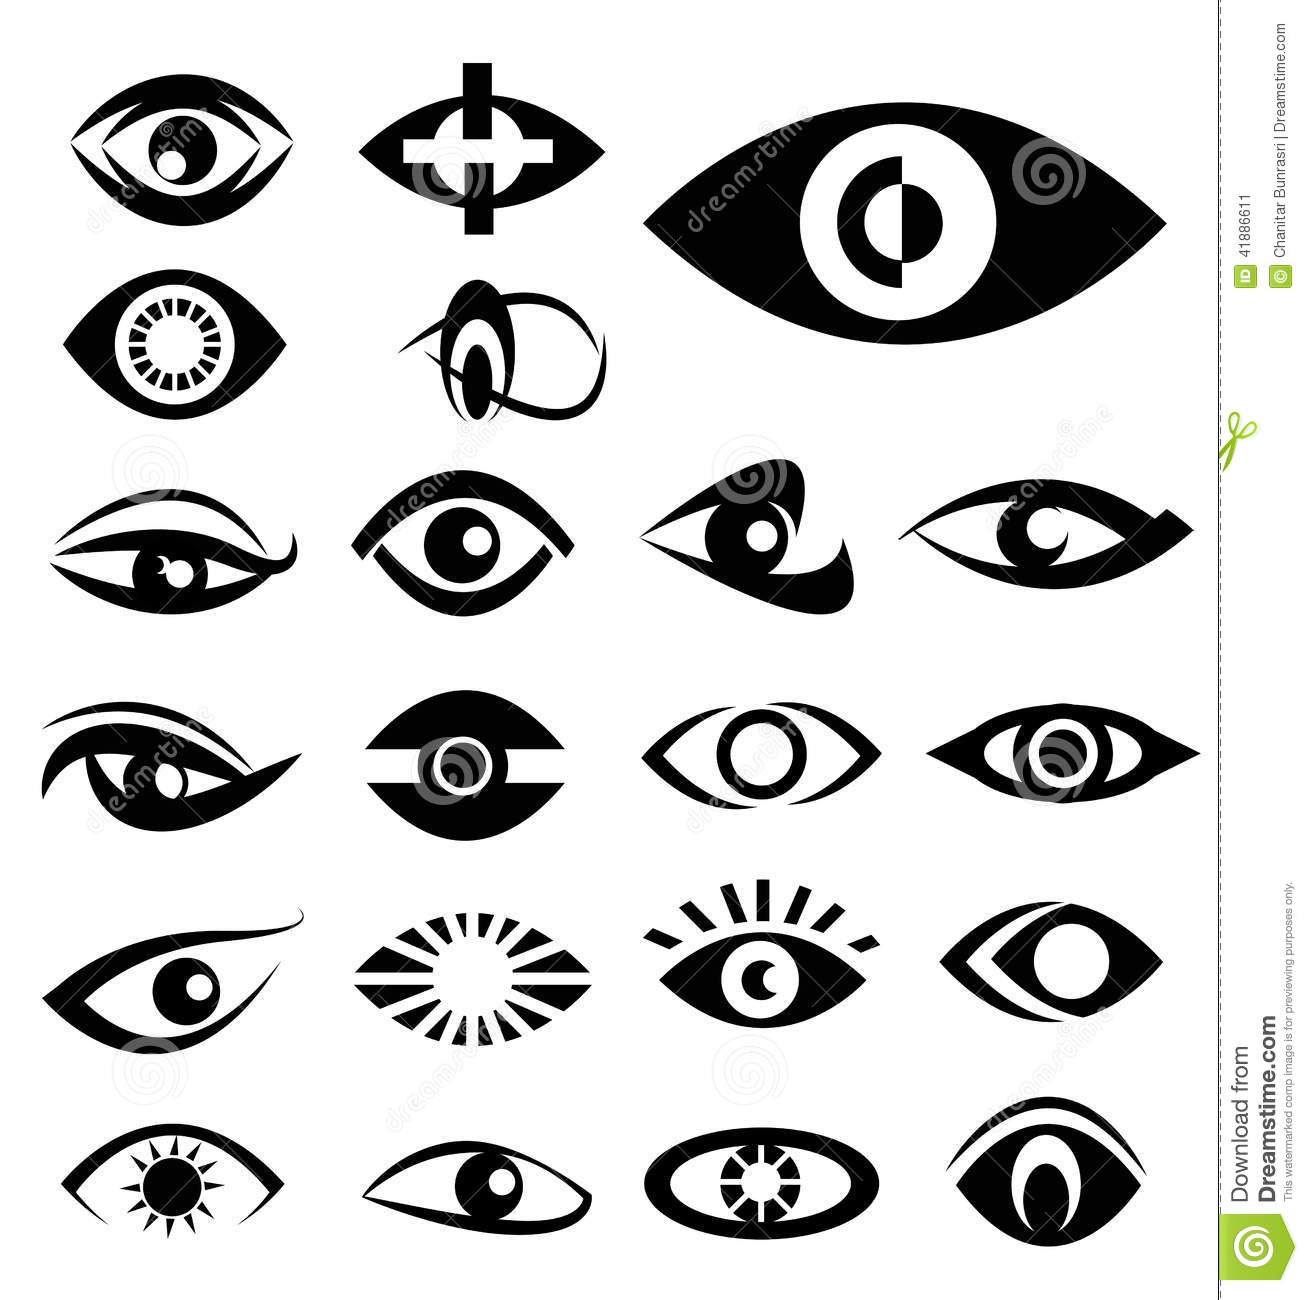 Eyes Designs Stock Vector - Image: 41886611